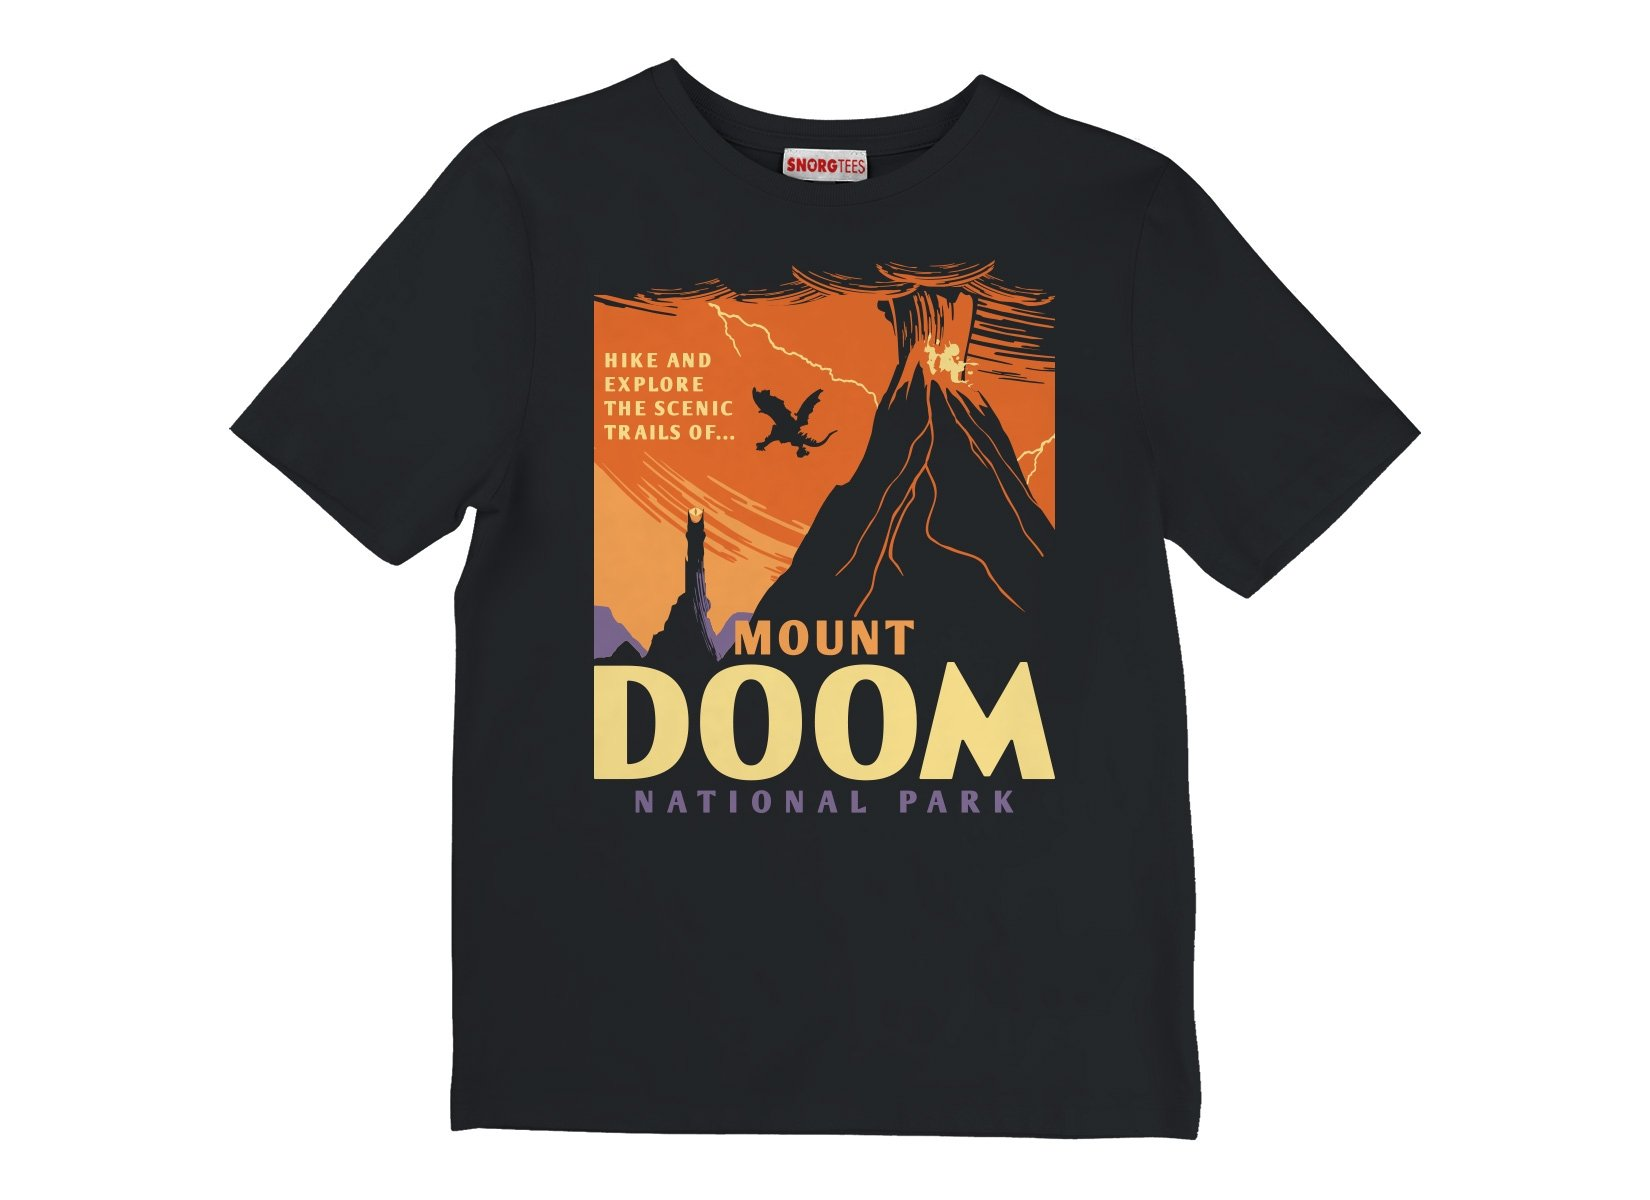 Mount Doom National Park on Kids T-Shirt